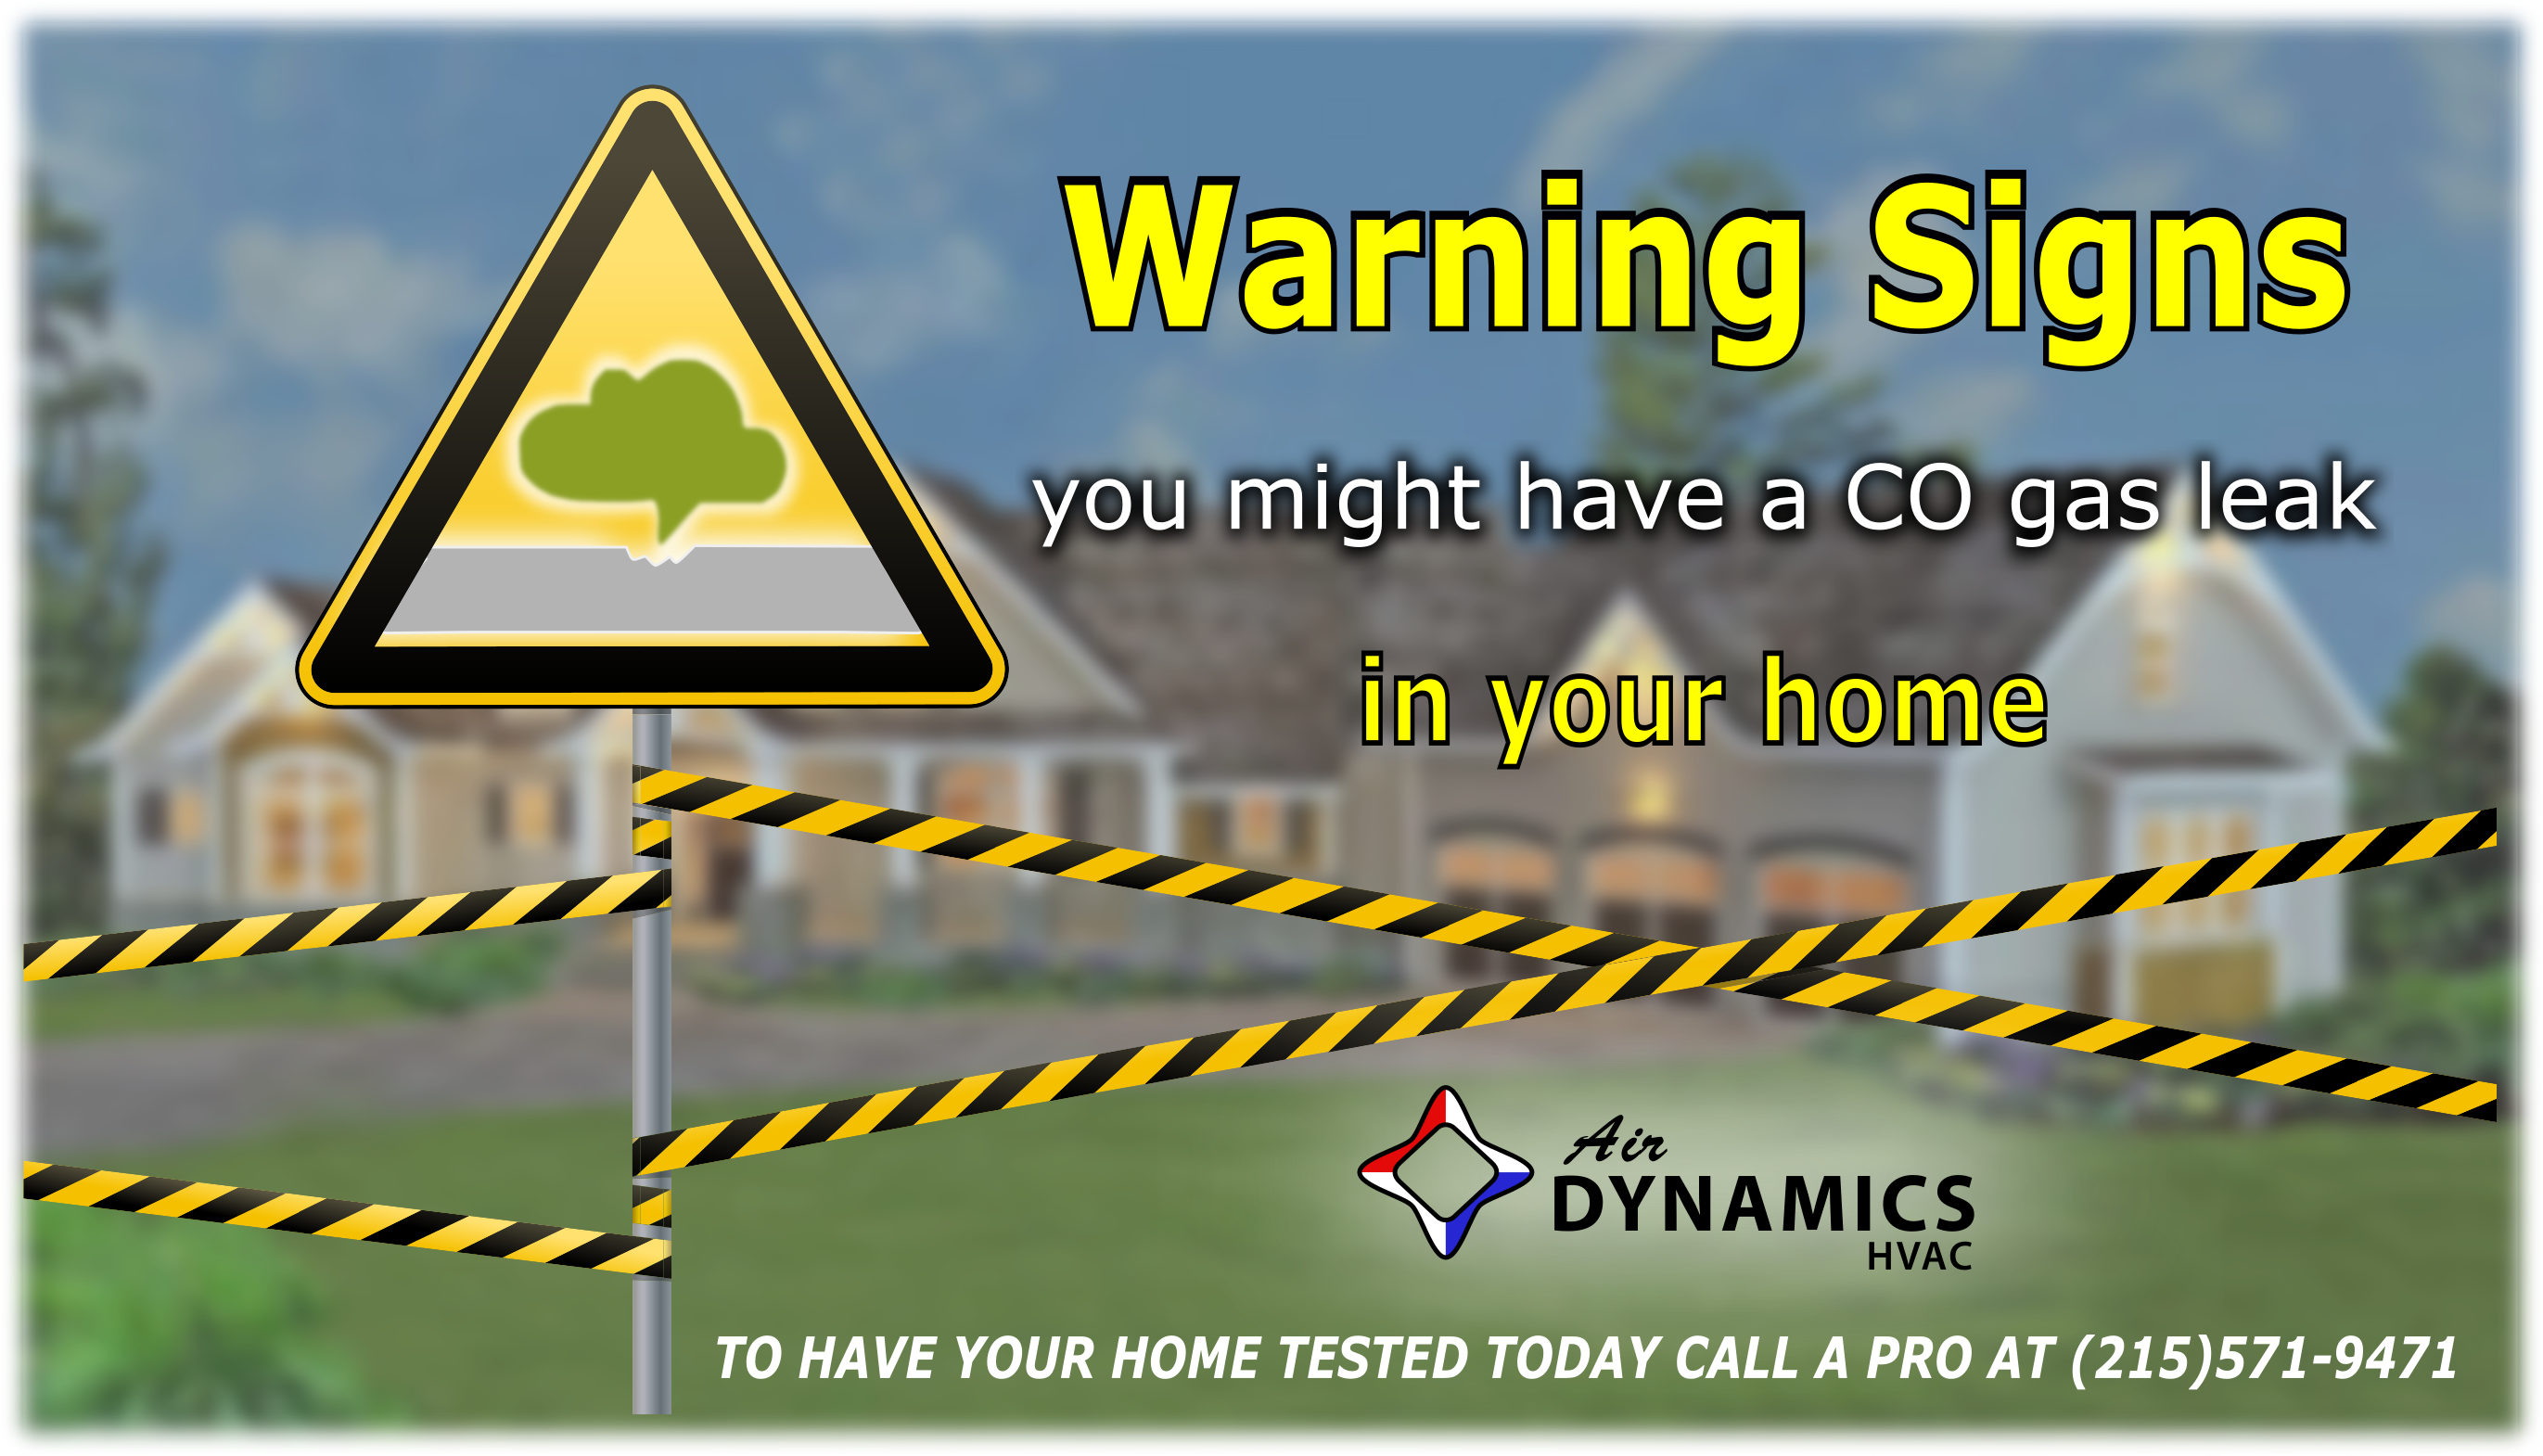 Air Dynamics HVAC | Greater Philadelphia HVAC Services | Carbon Monoxide Warning Signs